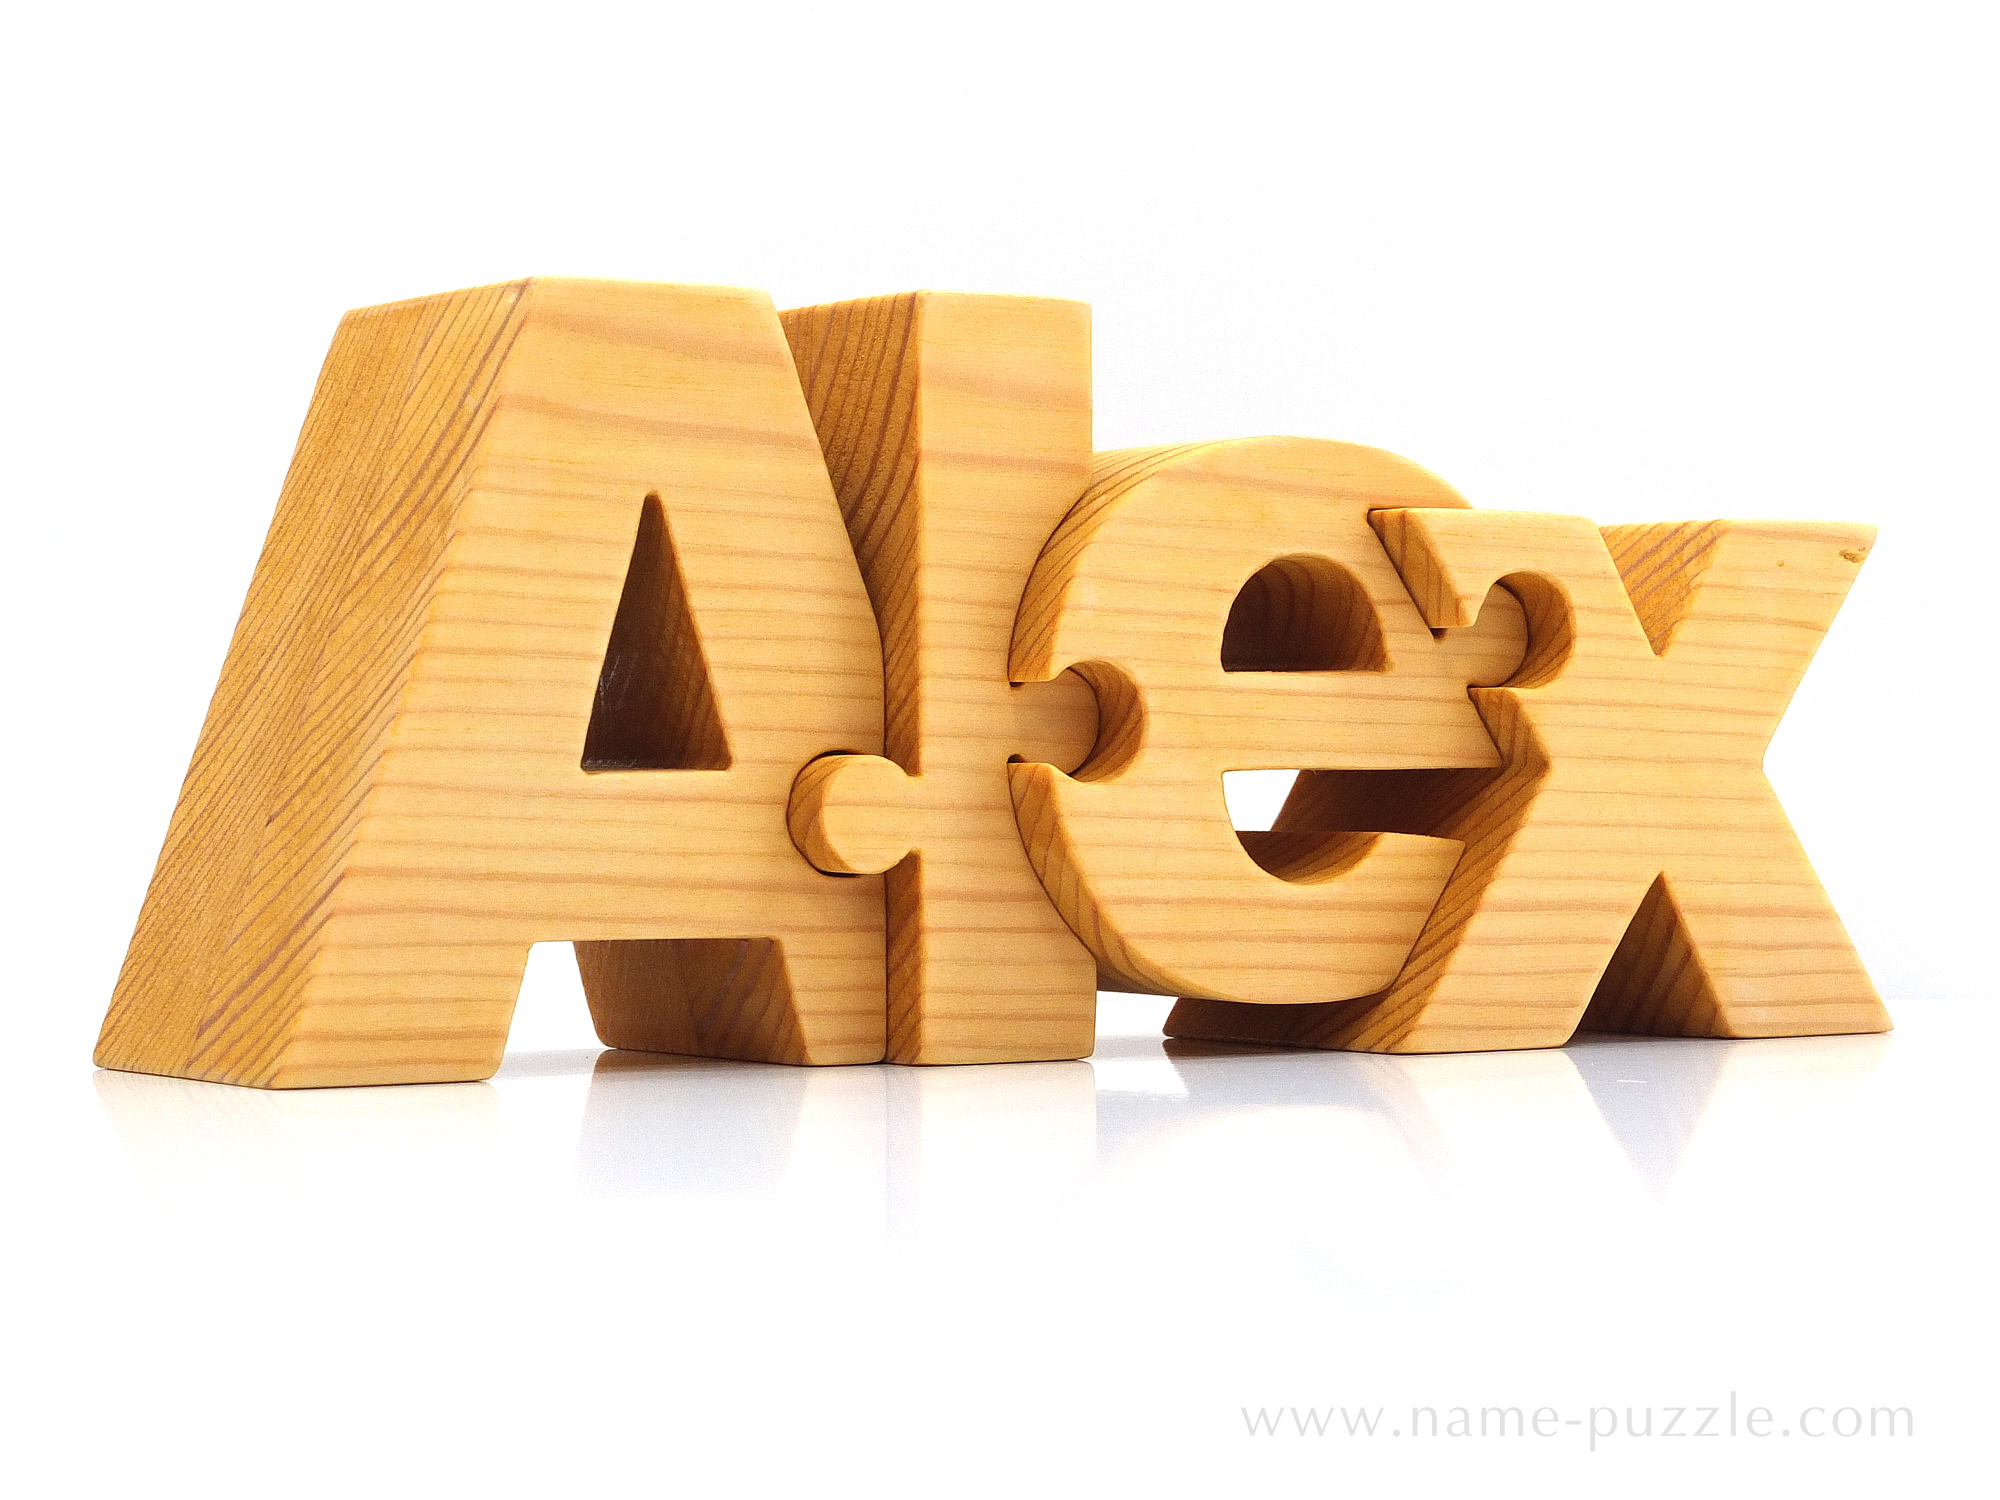 Personalized gift idea personalized wooden name puzzle unique wooden name puzzle unique gift idea negle Gallery